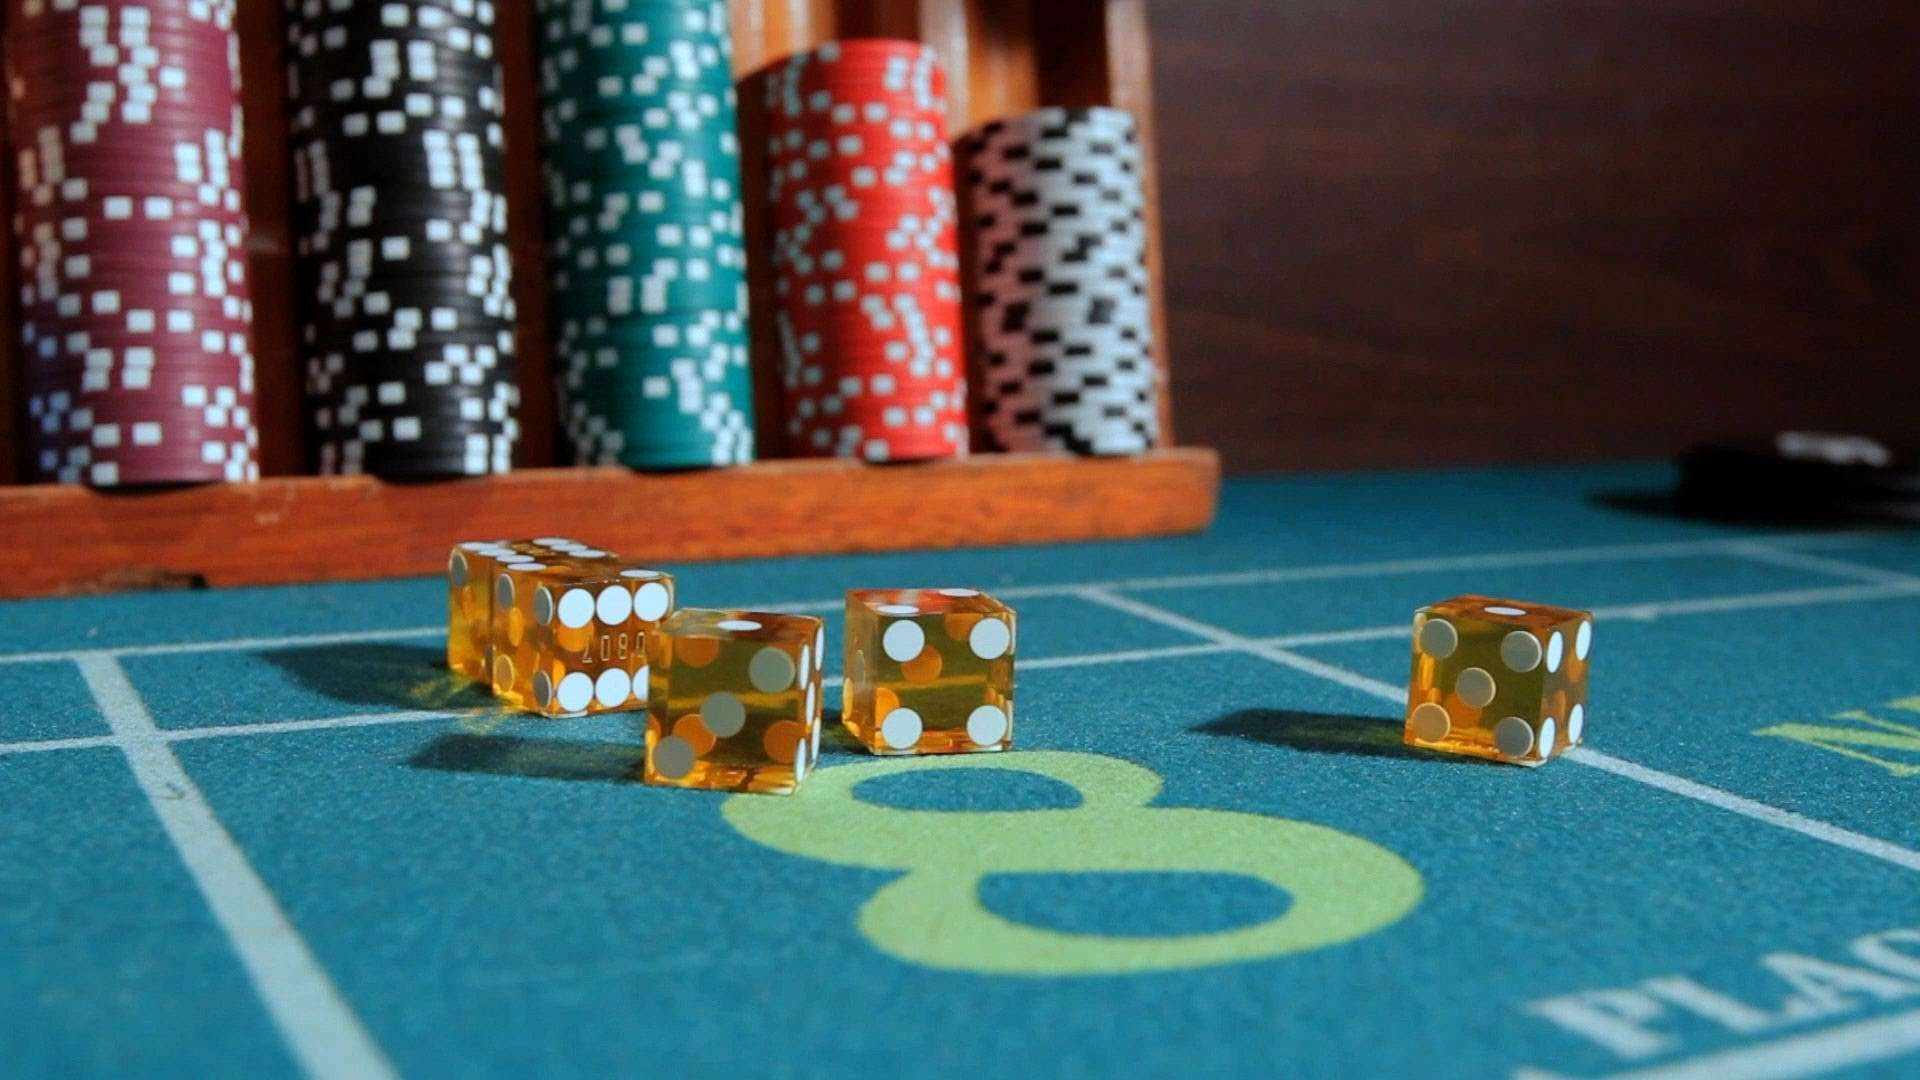 SOBRE CASINOS